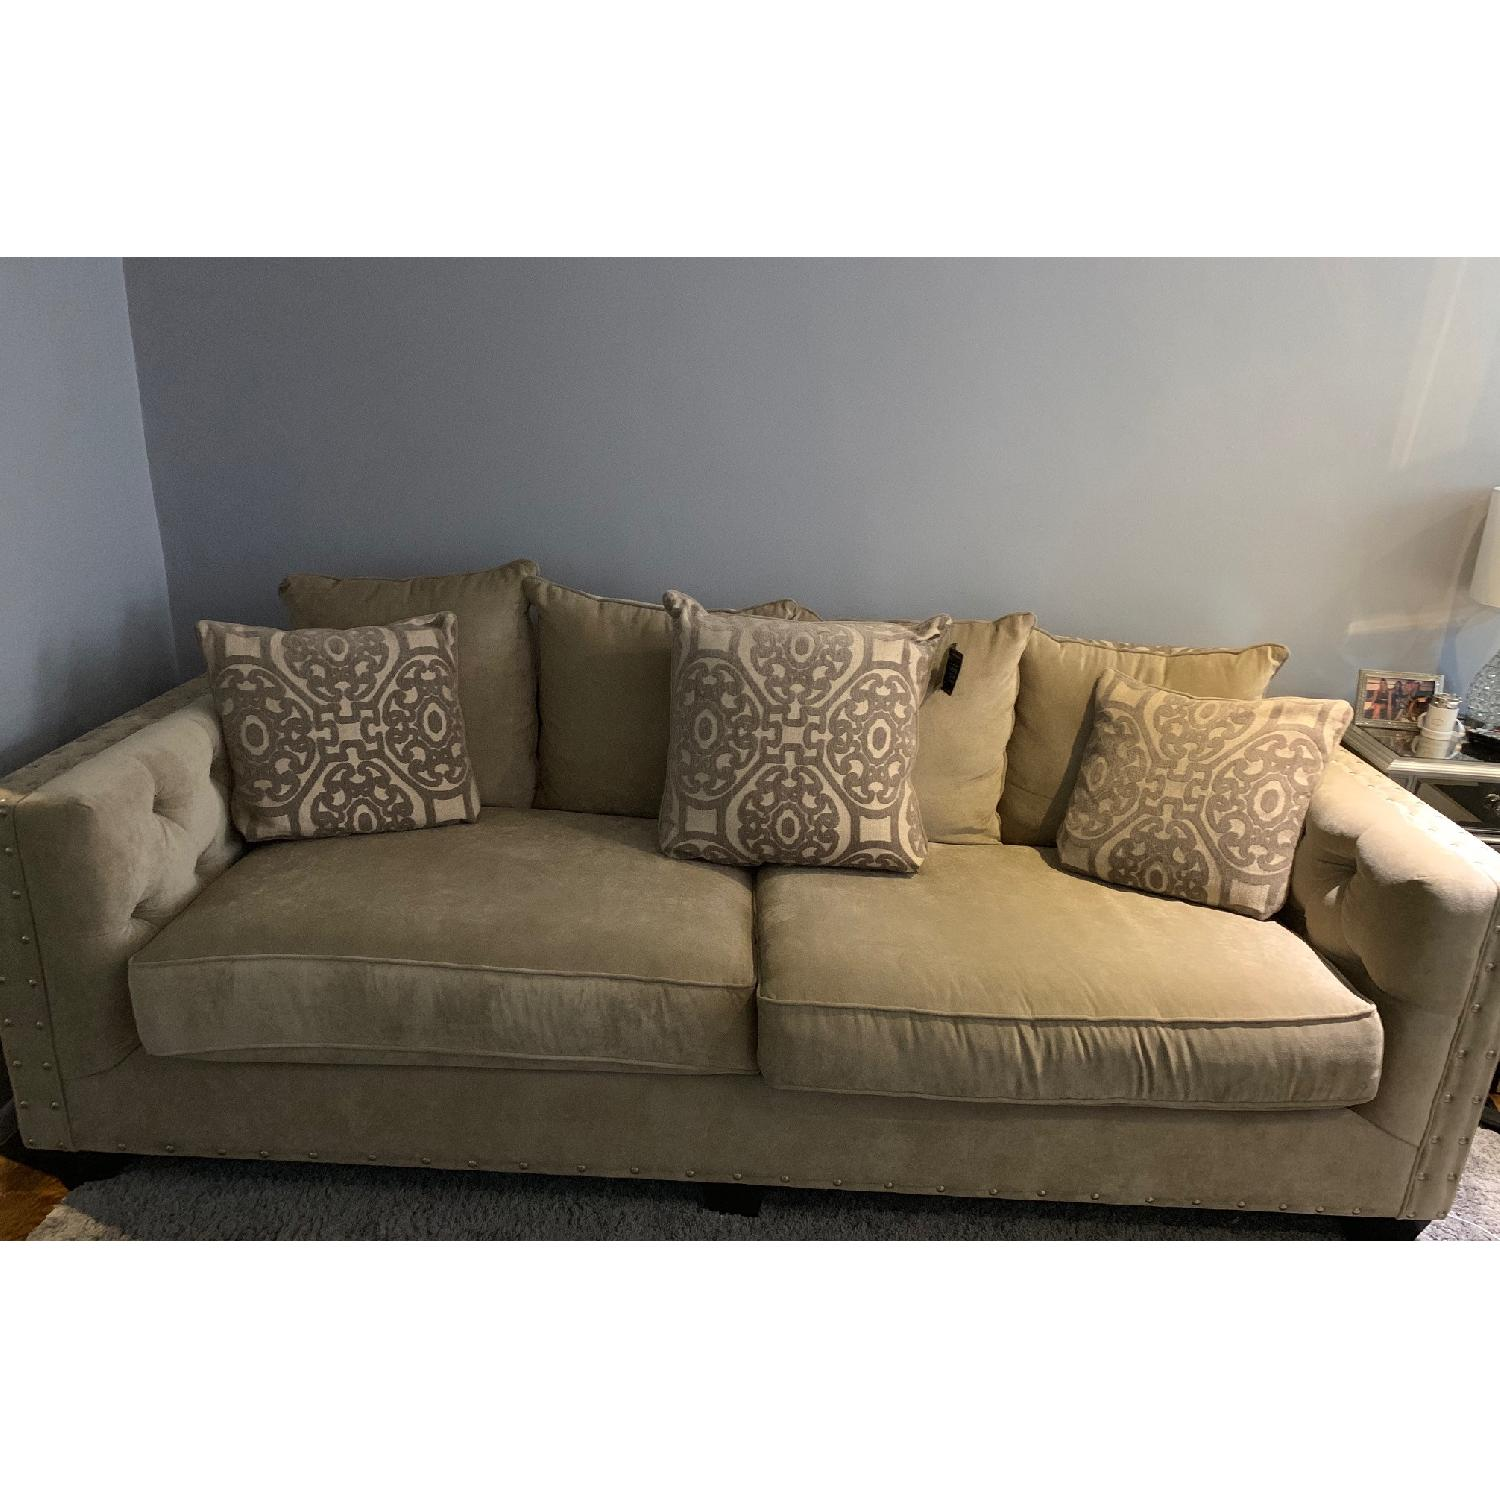 Raymour & Flanigan Sofa w/ Tufted Button Detail - image-1